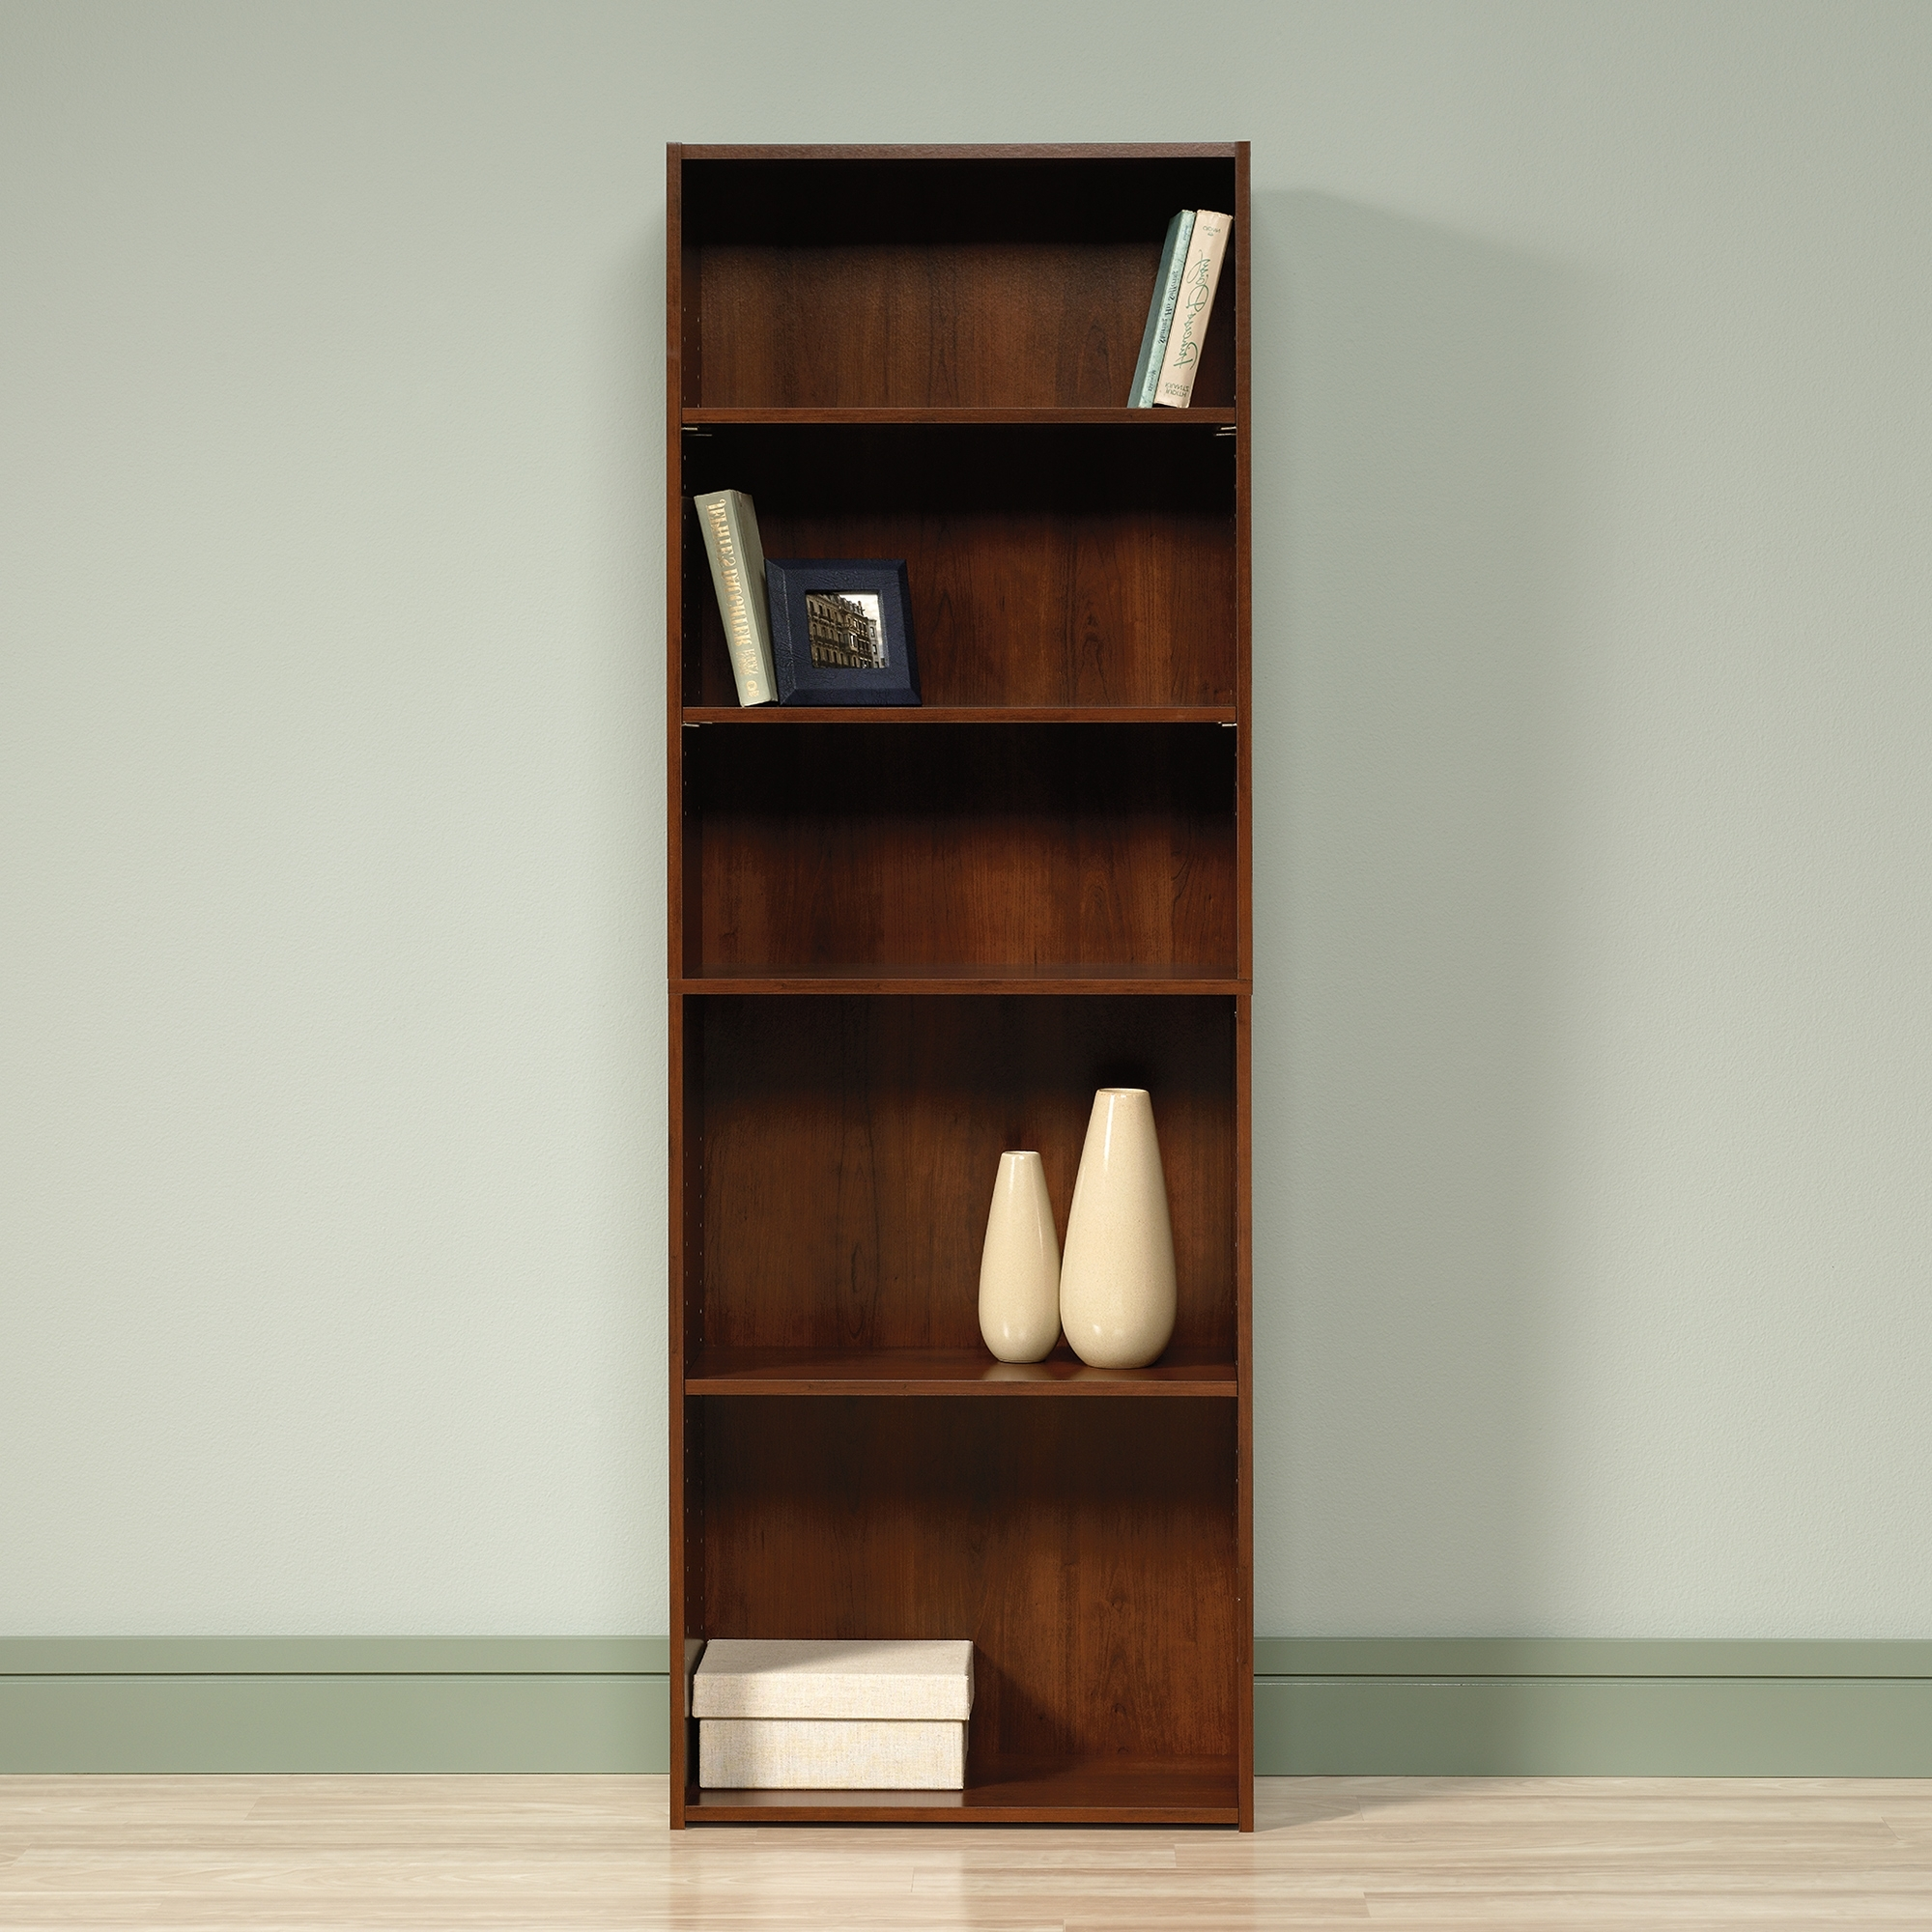 Interior Cheap Bookcases For Sale 3 Shelf Bookcase With Doors Intended For Best And Newest Cheap Bookcases (Gallery 10 of 15)